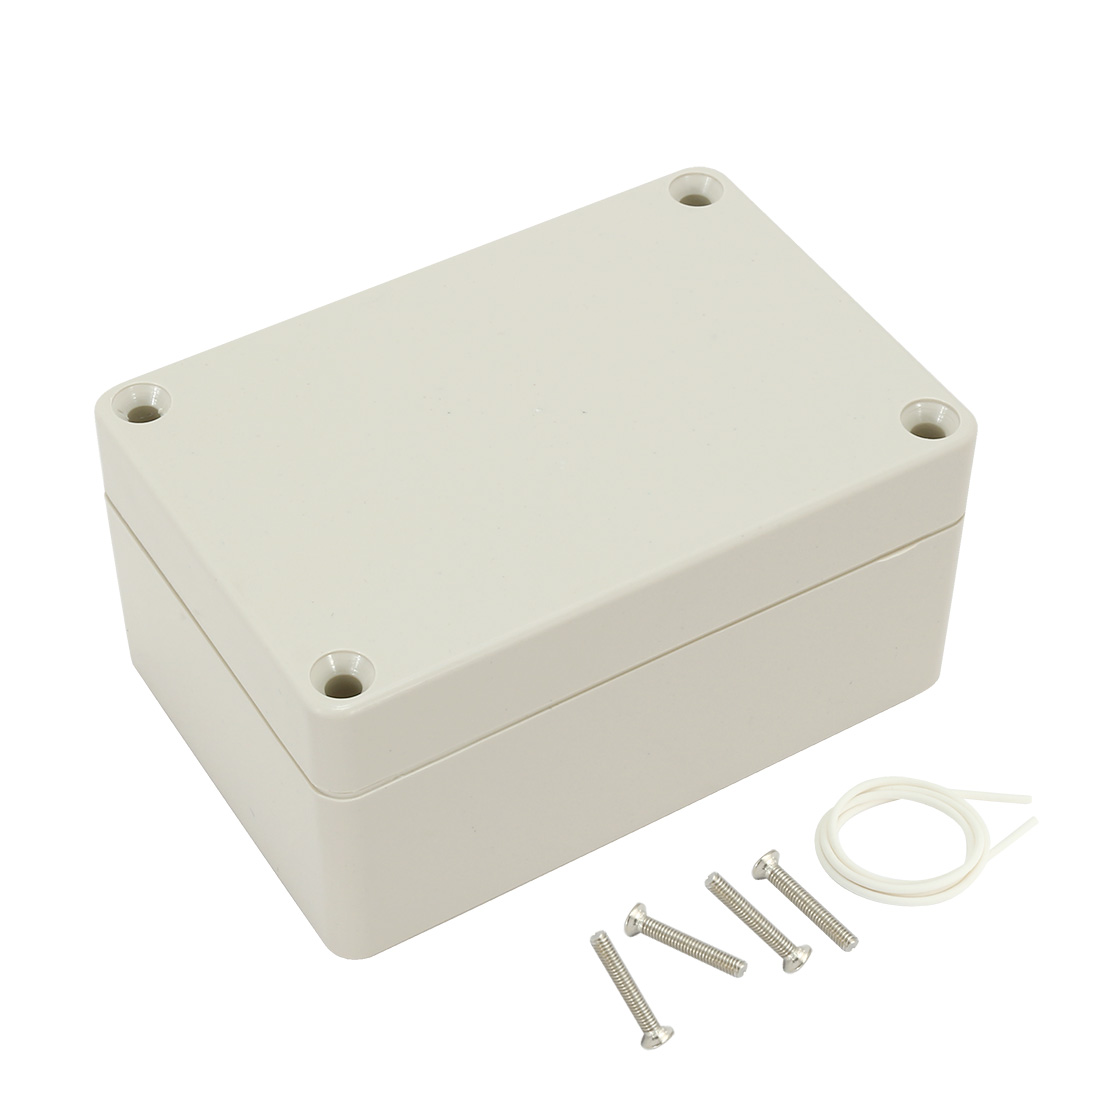 "3.9""x2.7""x2""(100mmx68mmx50mm) ABS Junction Box Universal Electric Project Enclosure"